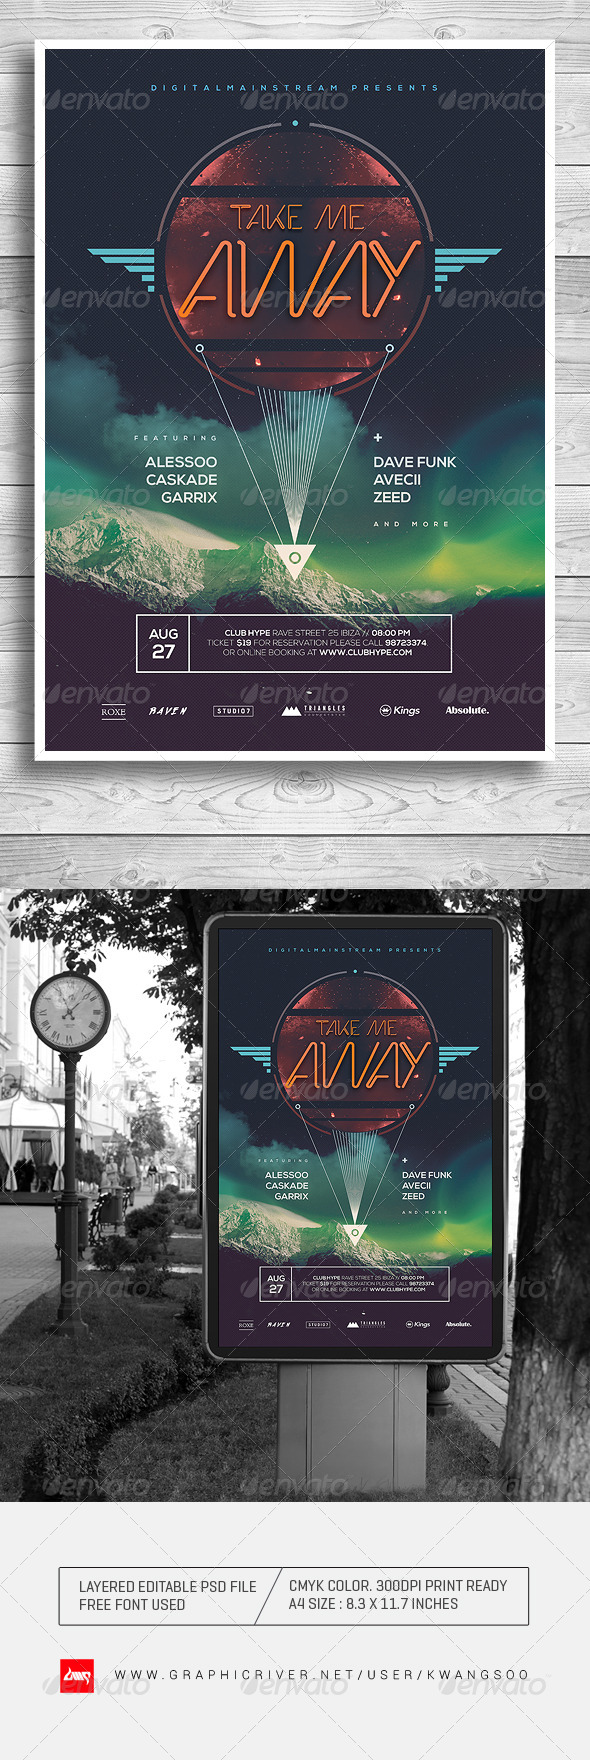 GraphicRiver Take Me Away Electro Music Poster Flyer 8240803